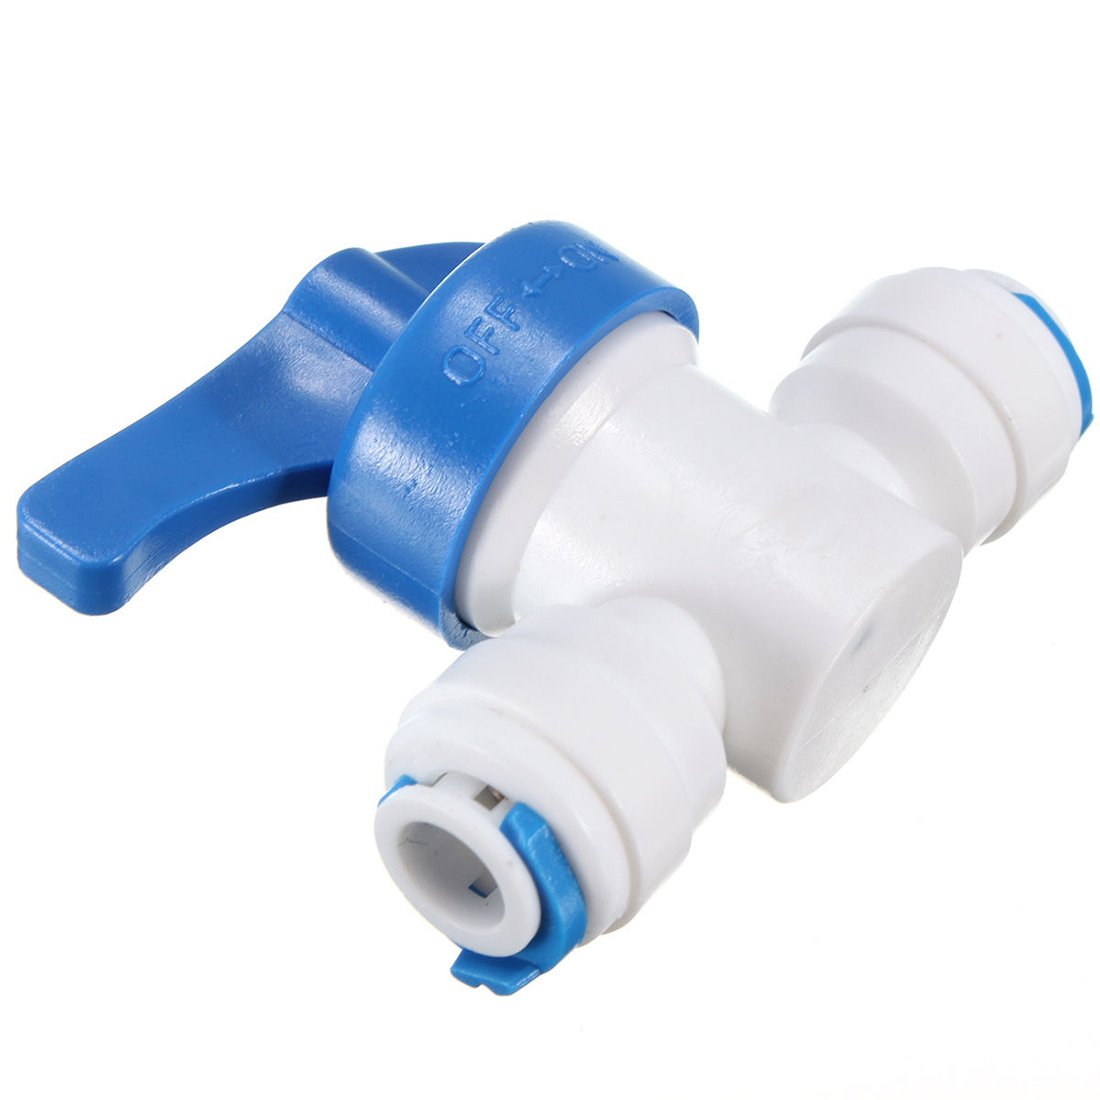 Water ball valve - TOOGOO(R)6mm 1/4 ''ball stopcock ball valve with clutch stopcock RO System